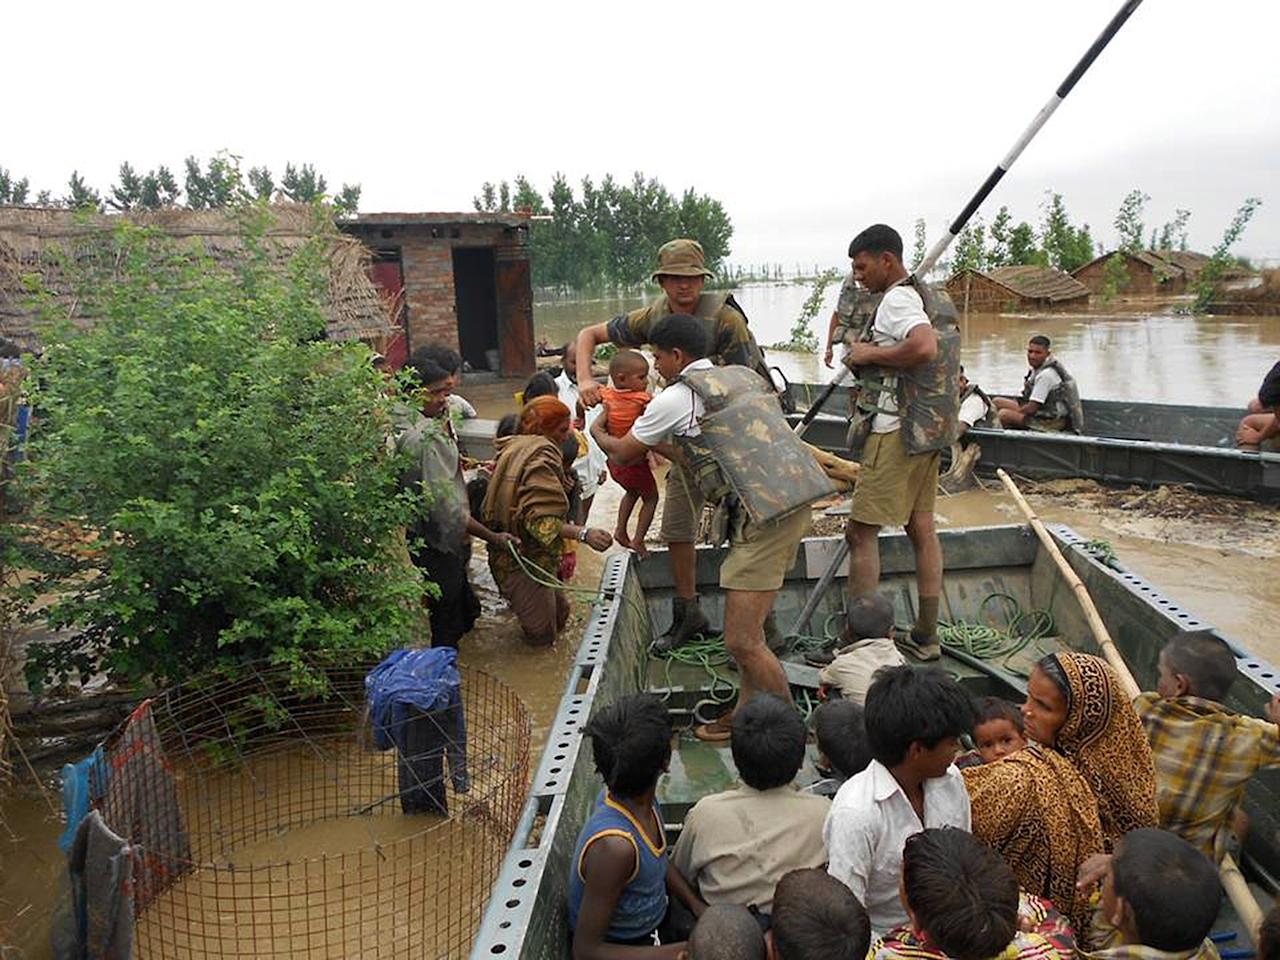 """In this photograph received from the Defence Ministry on June 19, 2013 members of the Indian Defence Forces rescue stranded villagers in the northern Uttarakhand state.   Military helicopters dropped emergency supplies June 19 to thousands of people stranded by flash floods that tore through towns and temples in northern India and neighbouring Nepal, killing more than 160, officials said.  AFP PHOTO/DEFENCE MINISTRY     ----EDITORS NOTE---- RESTRICTED TO EDITORIAL USE - MANDATORY CREDIT -  """"AFP PHOTO / DEFENCE MINISTRY"""" - NO MARKETING NO ADVERTISING CAMPAIGNS - DISTRIBUTED AS A SERVICE TO CLIENTS -----"""